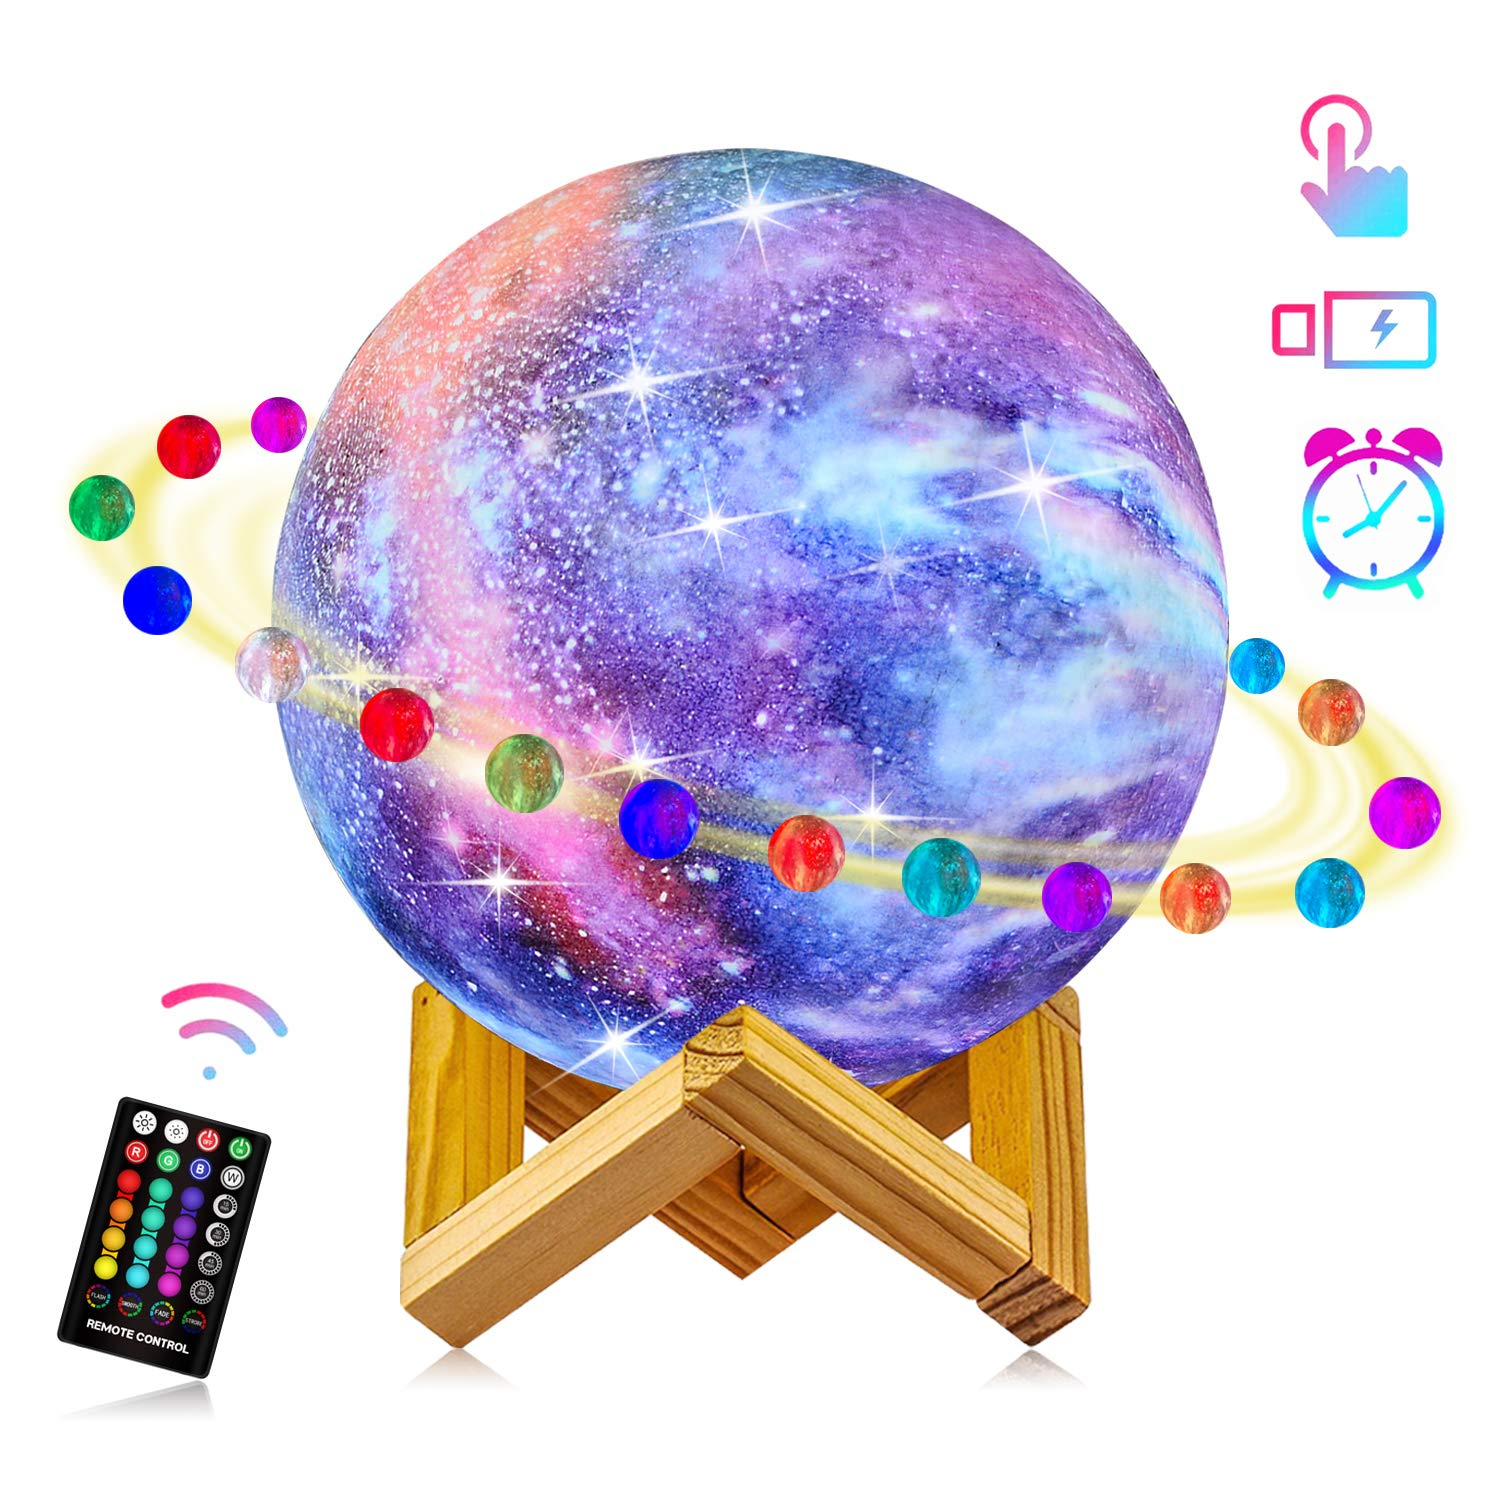 Starry Moon Lamp, LOGROTATE Galaxy Night Light 16 Colors 3D Print LED Moon Light with Stand, Remote&Touch Control, USB Rechargeable Gift for Women Kids Birthday, Bedroom Home Decor, 5.98 inch